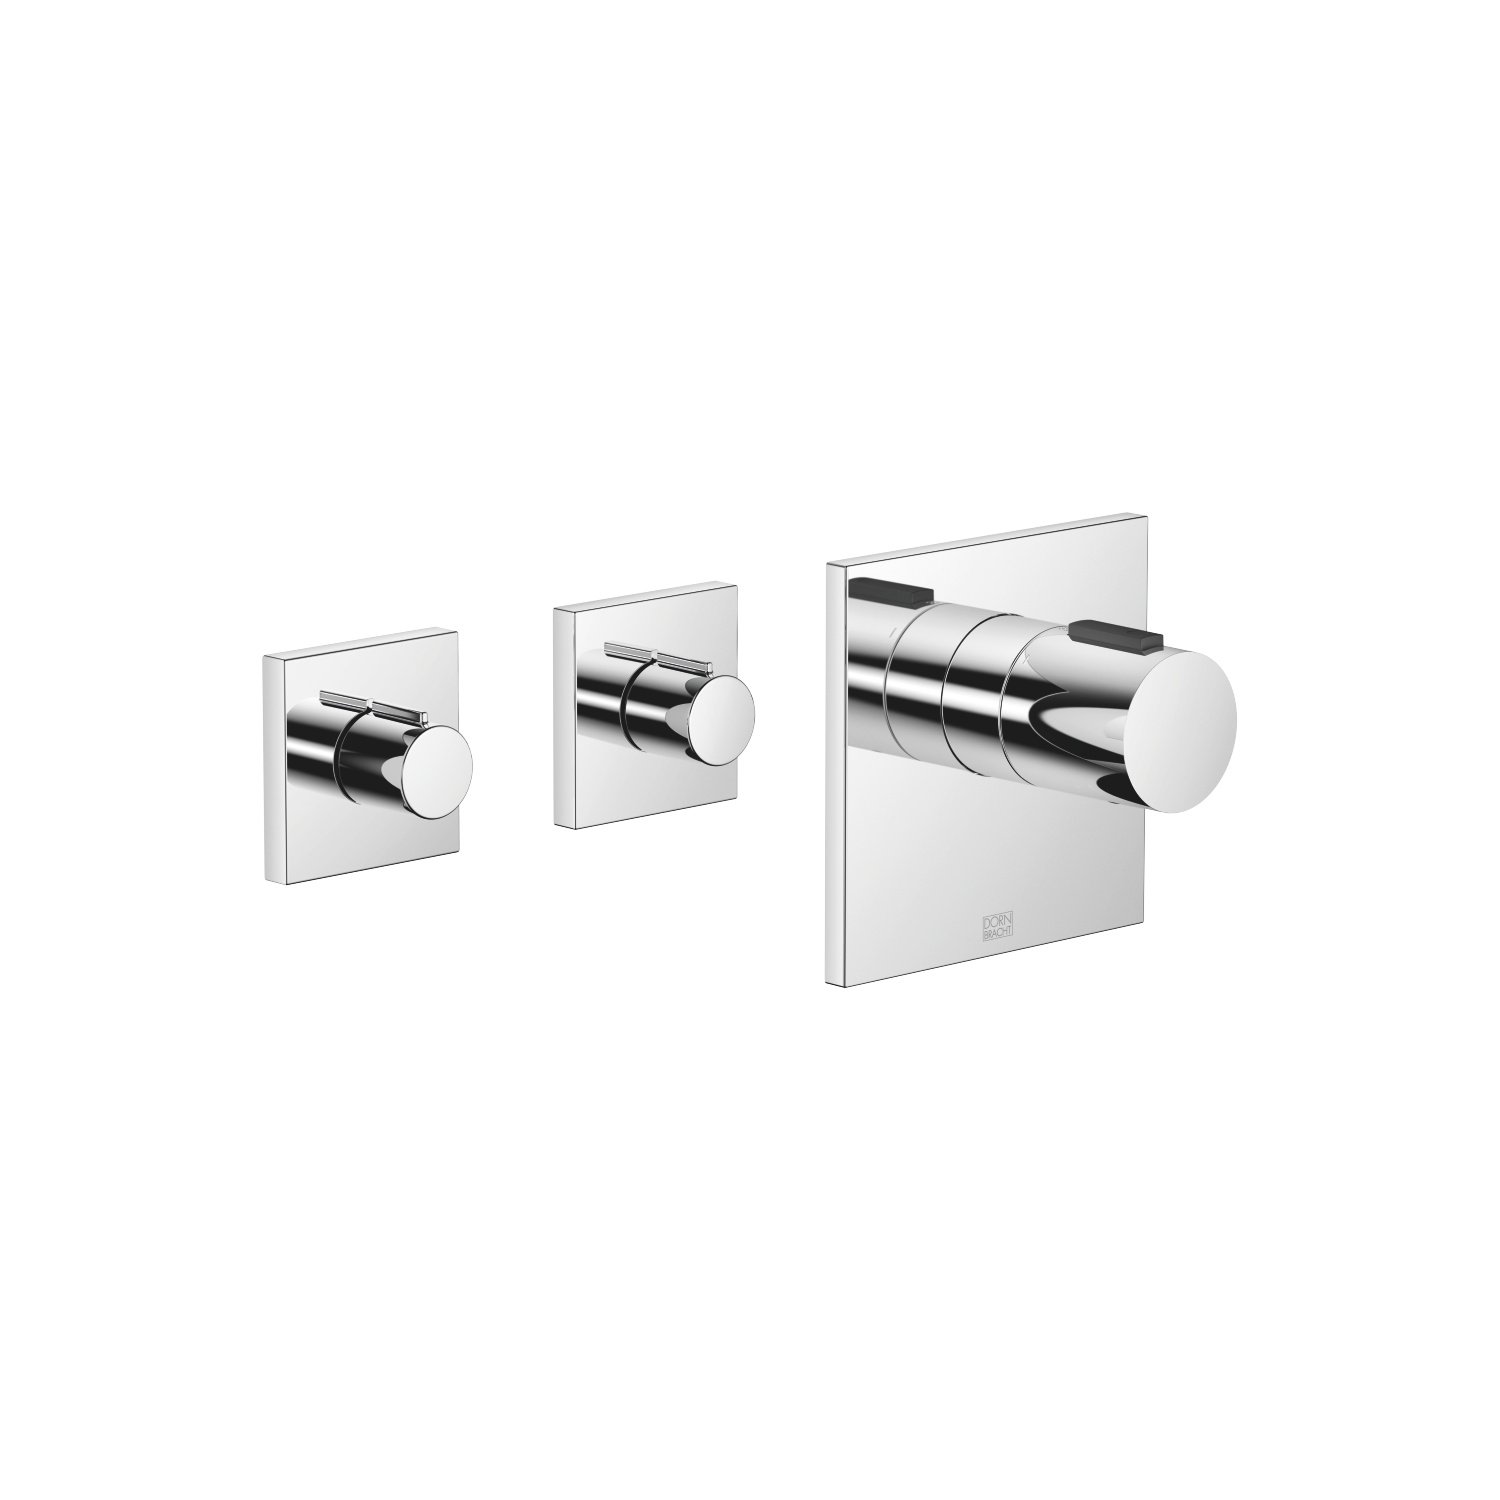 xTOOL Thermostat module with 2 valves - polished chrome